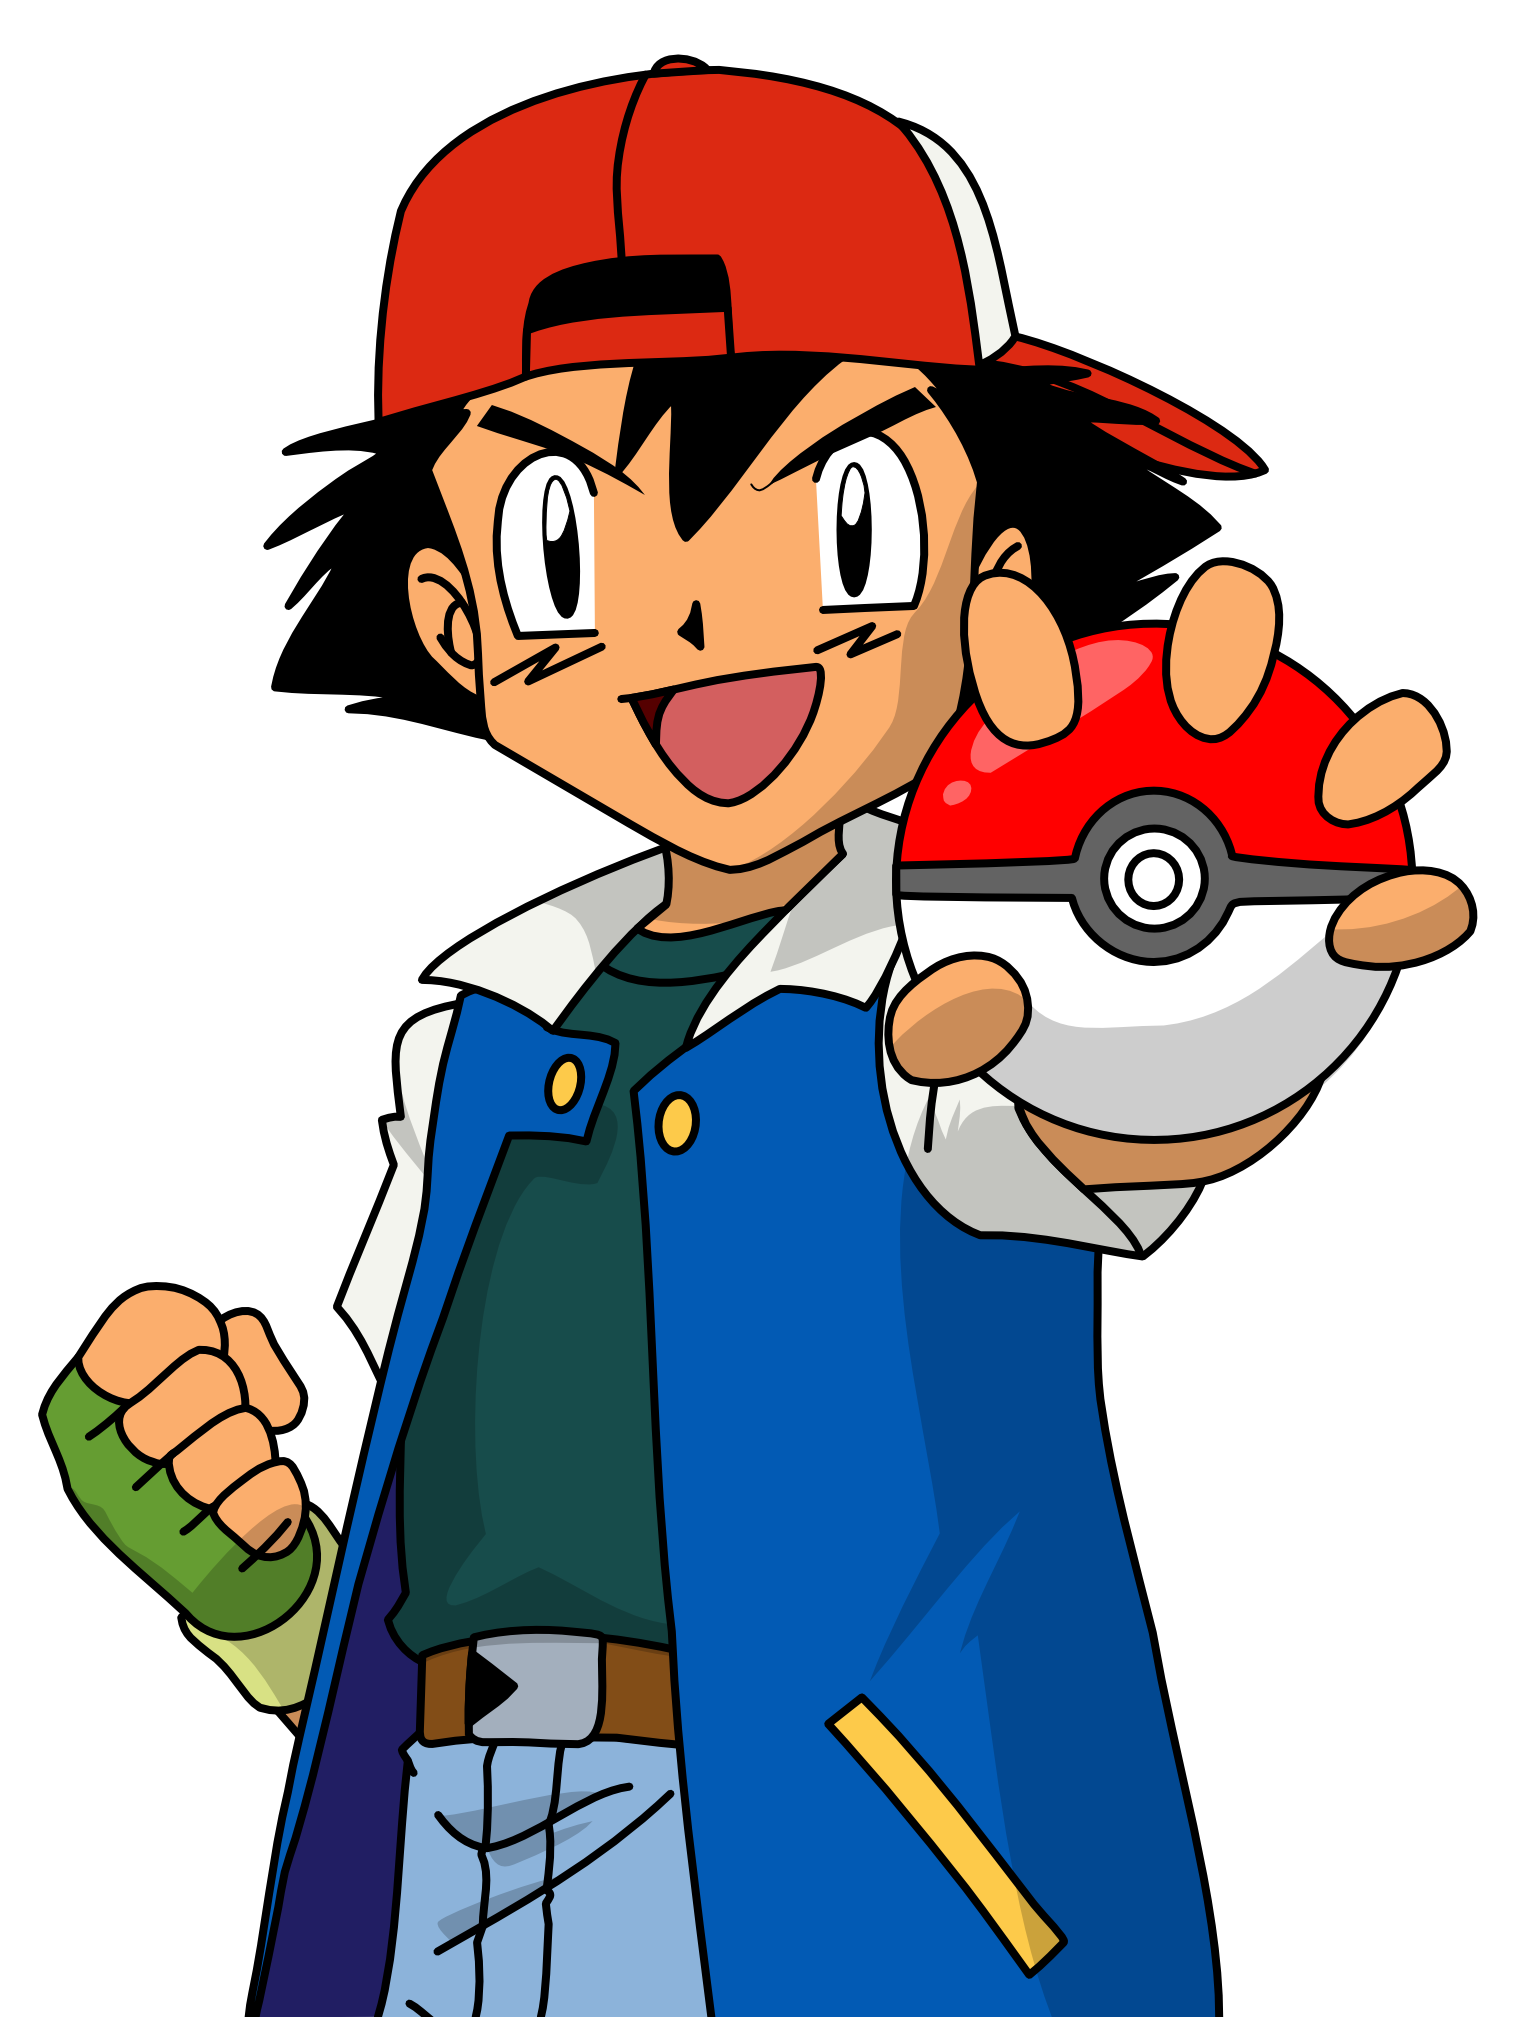 Pete the cat the big lunch clipart graphic freeuse stock Ash Ketchum | Pinterest | Ash ketchum, Pokémon and Ash pokemon graphic freeuse stock